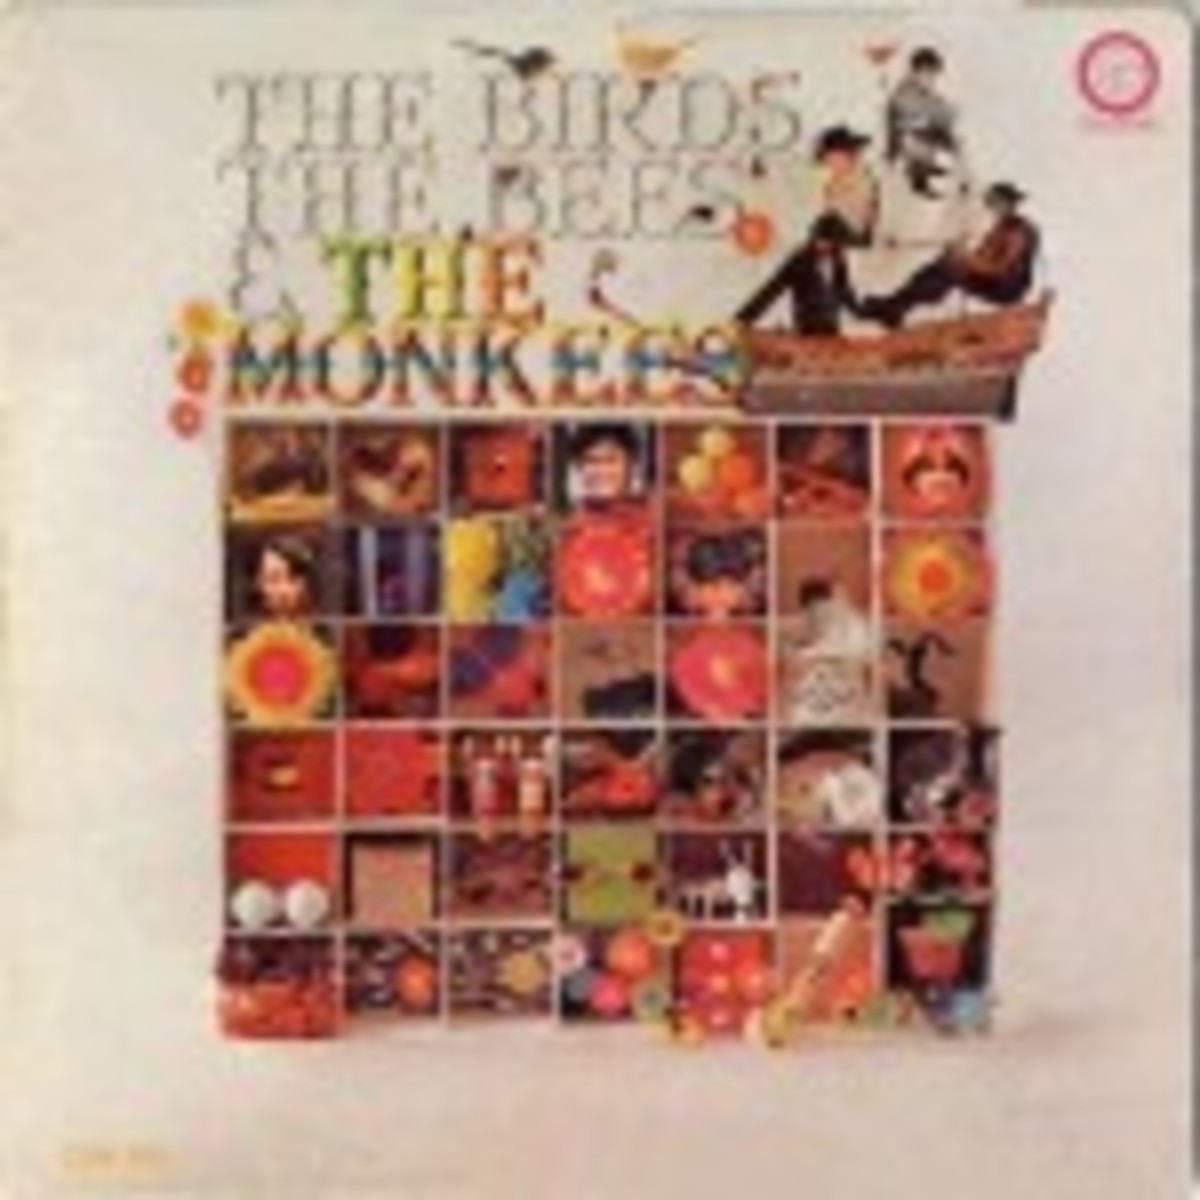 The Birds The Bees and The Monkees